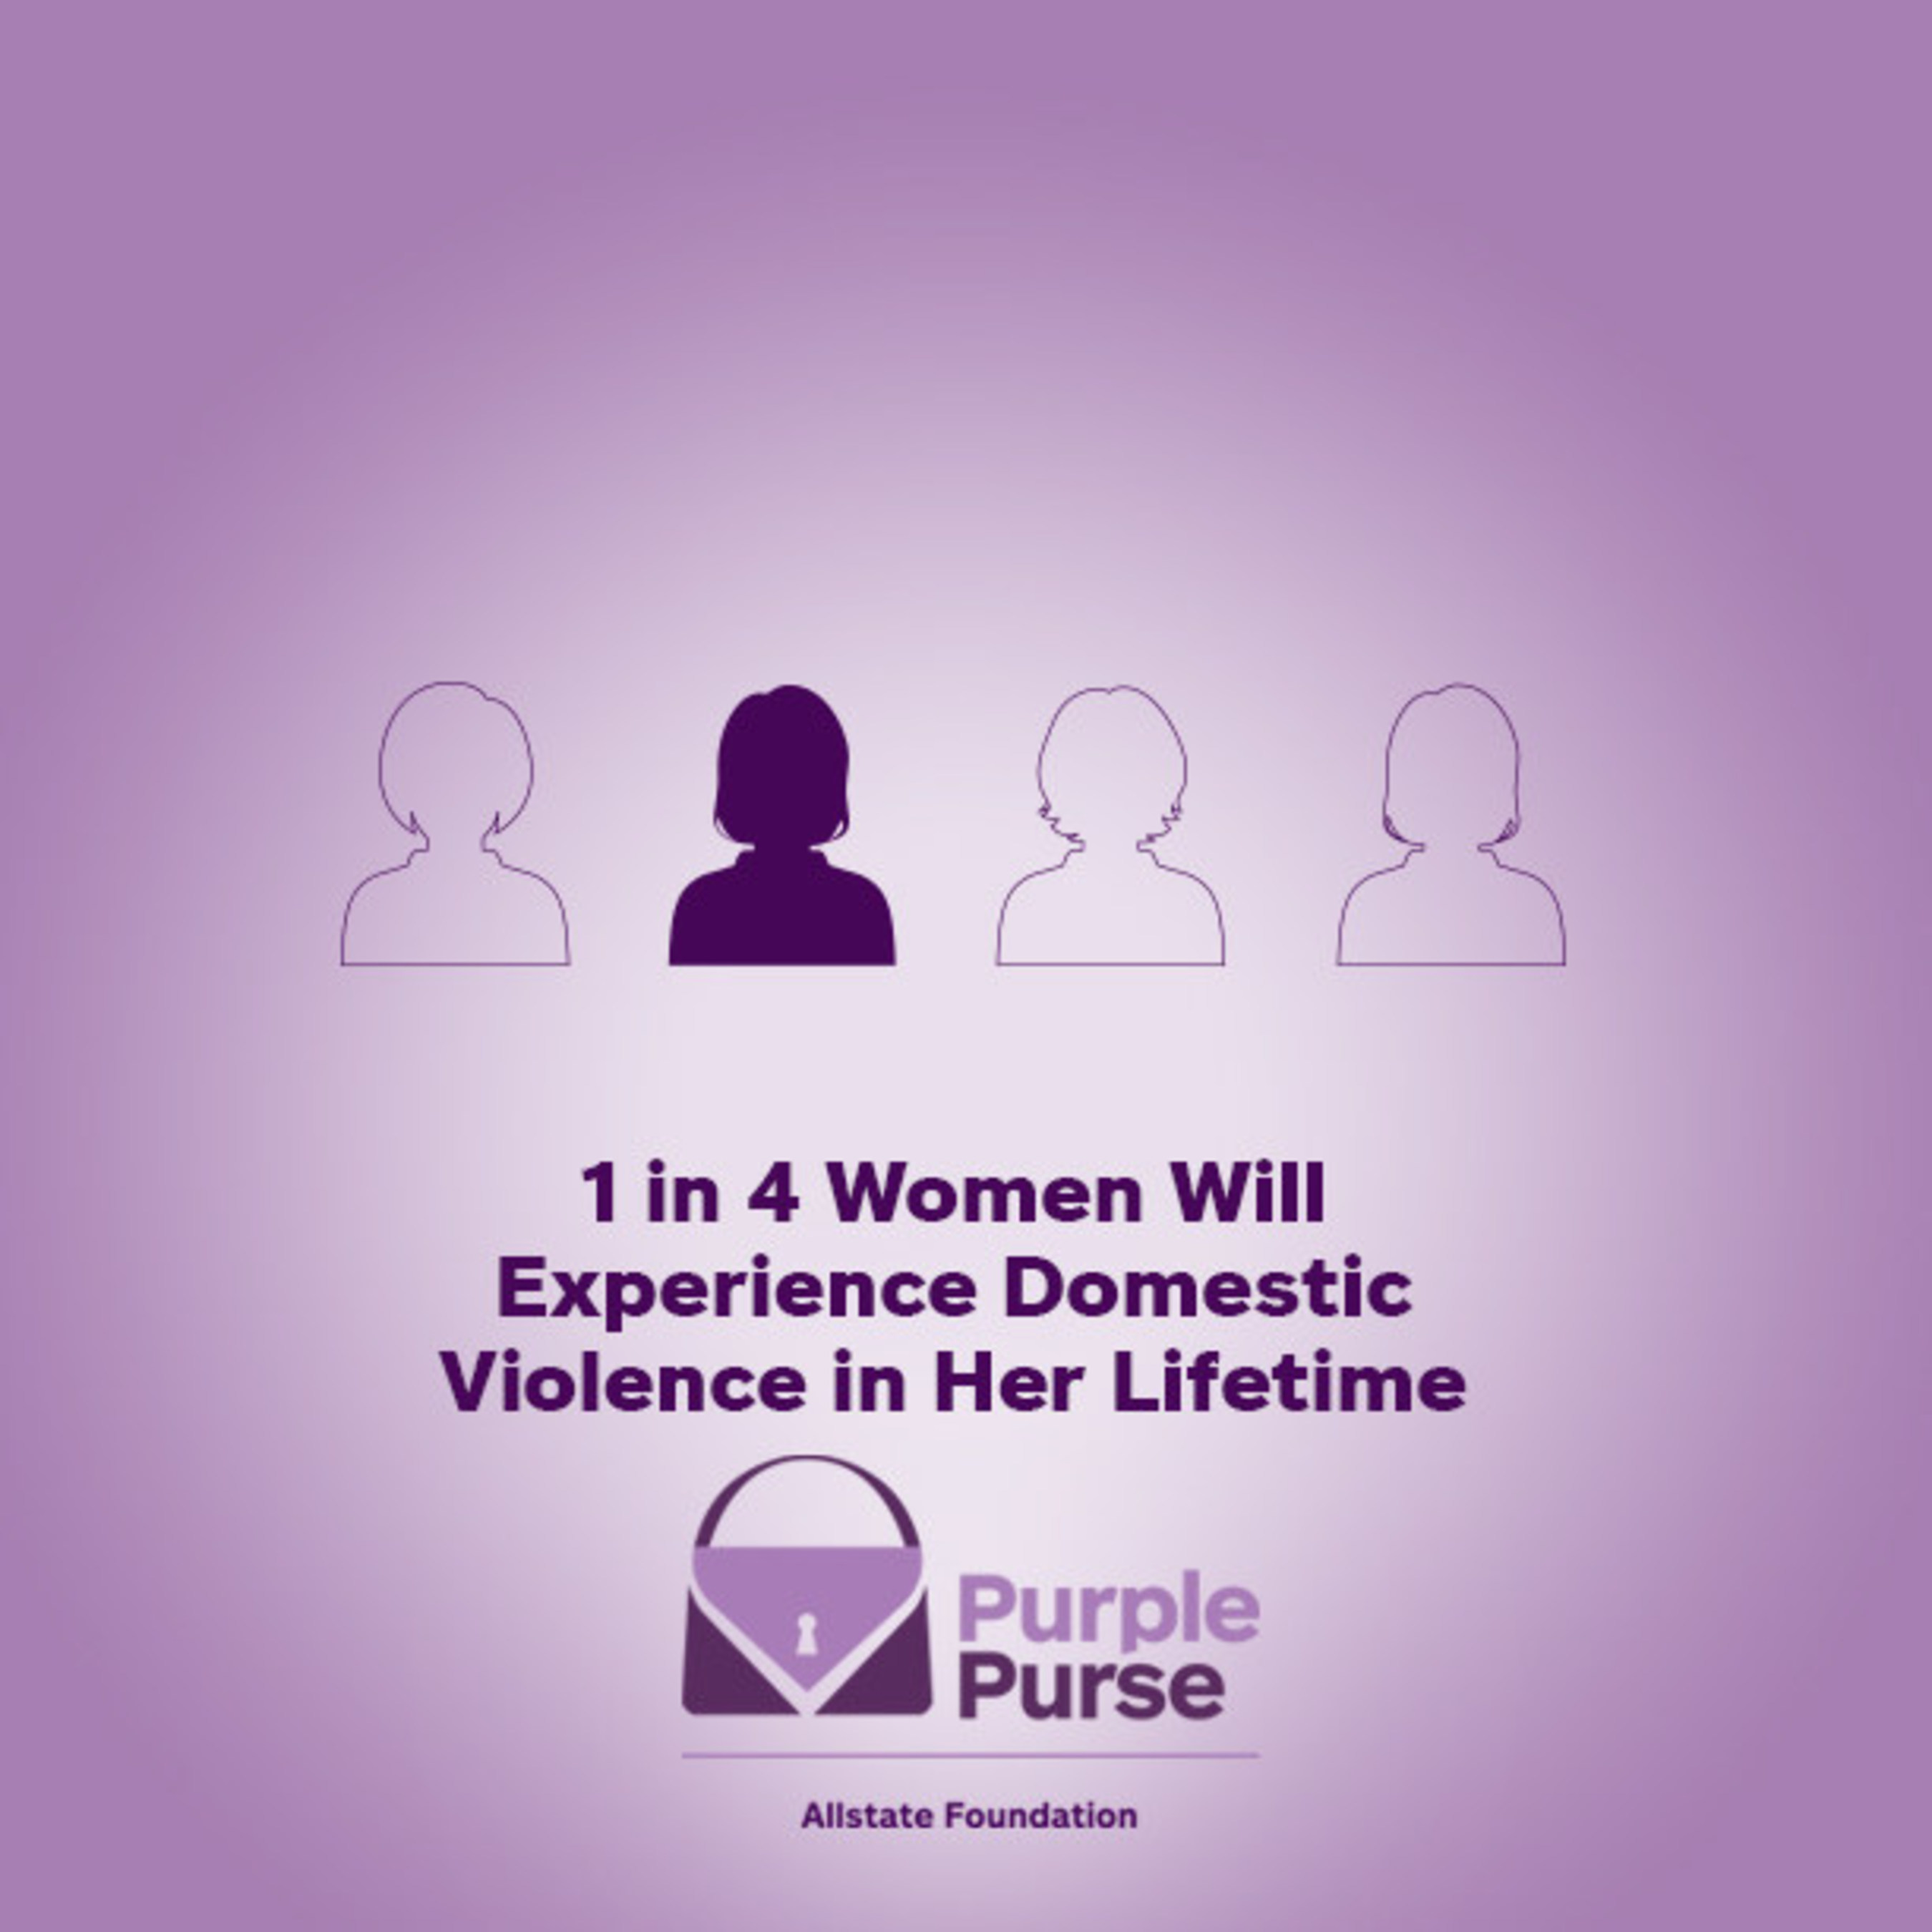 Support the Allstate Foundation Purple Purse Challenge and help put an end to domestic violence & financial abuse